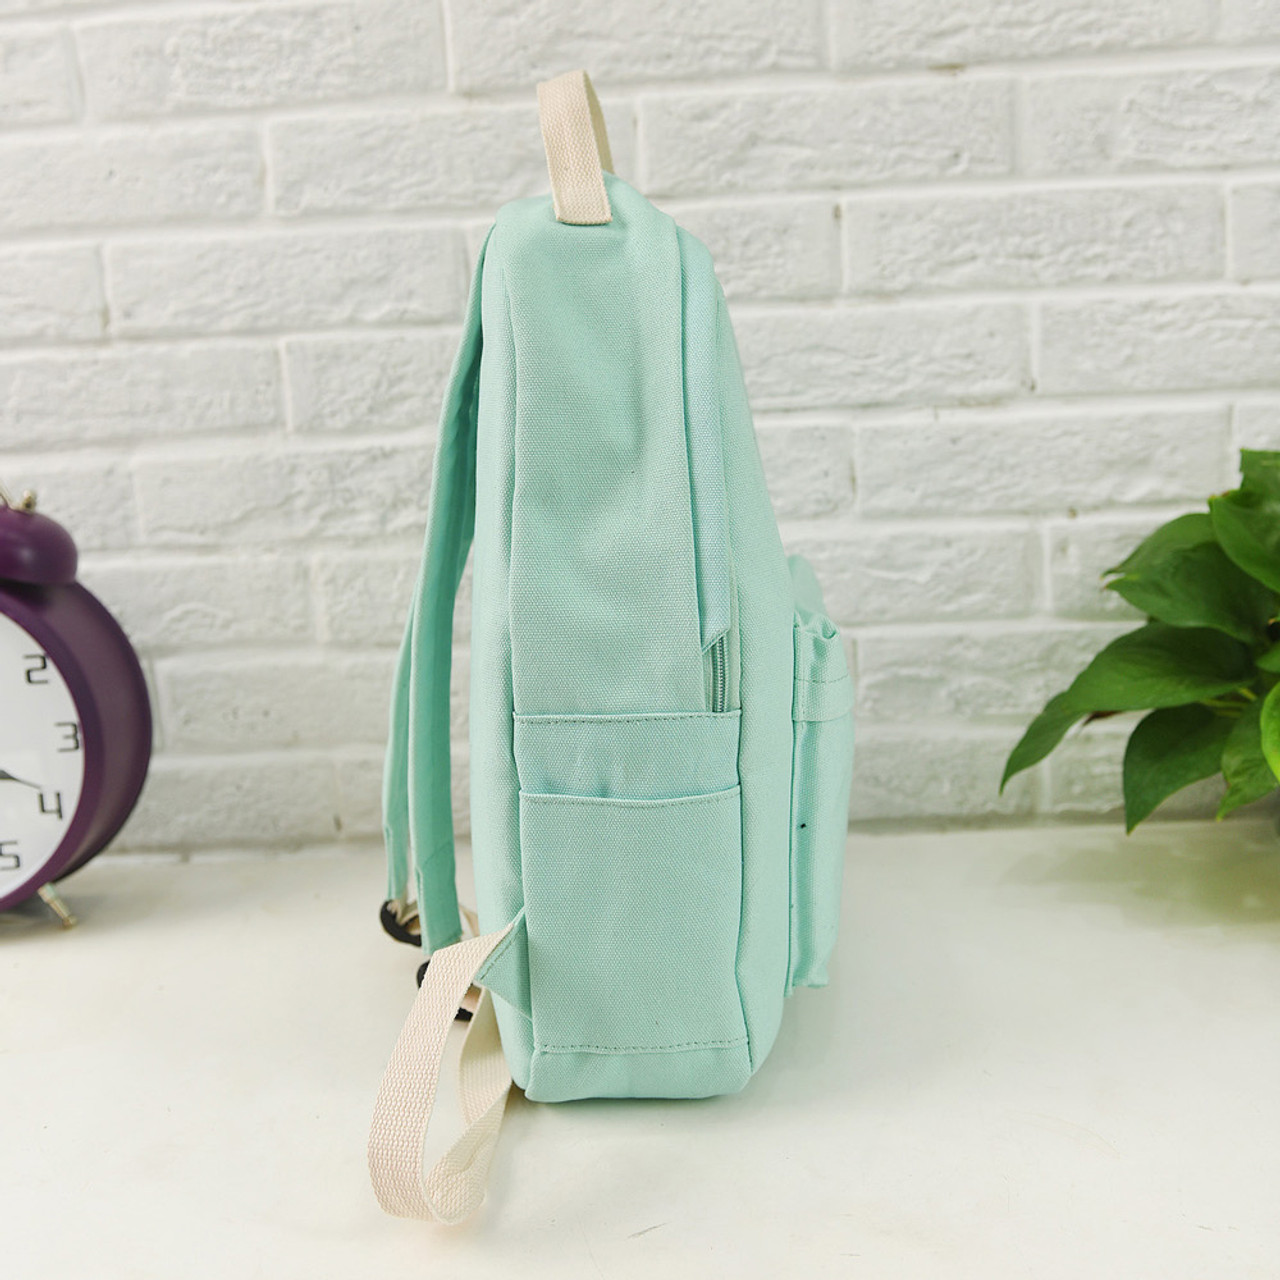 ... Women Backpack Cat Printing Canvas School Bags For Teenager Girls  Preppy Style 3 Set PC ... abc406d77e0ea